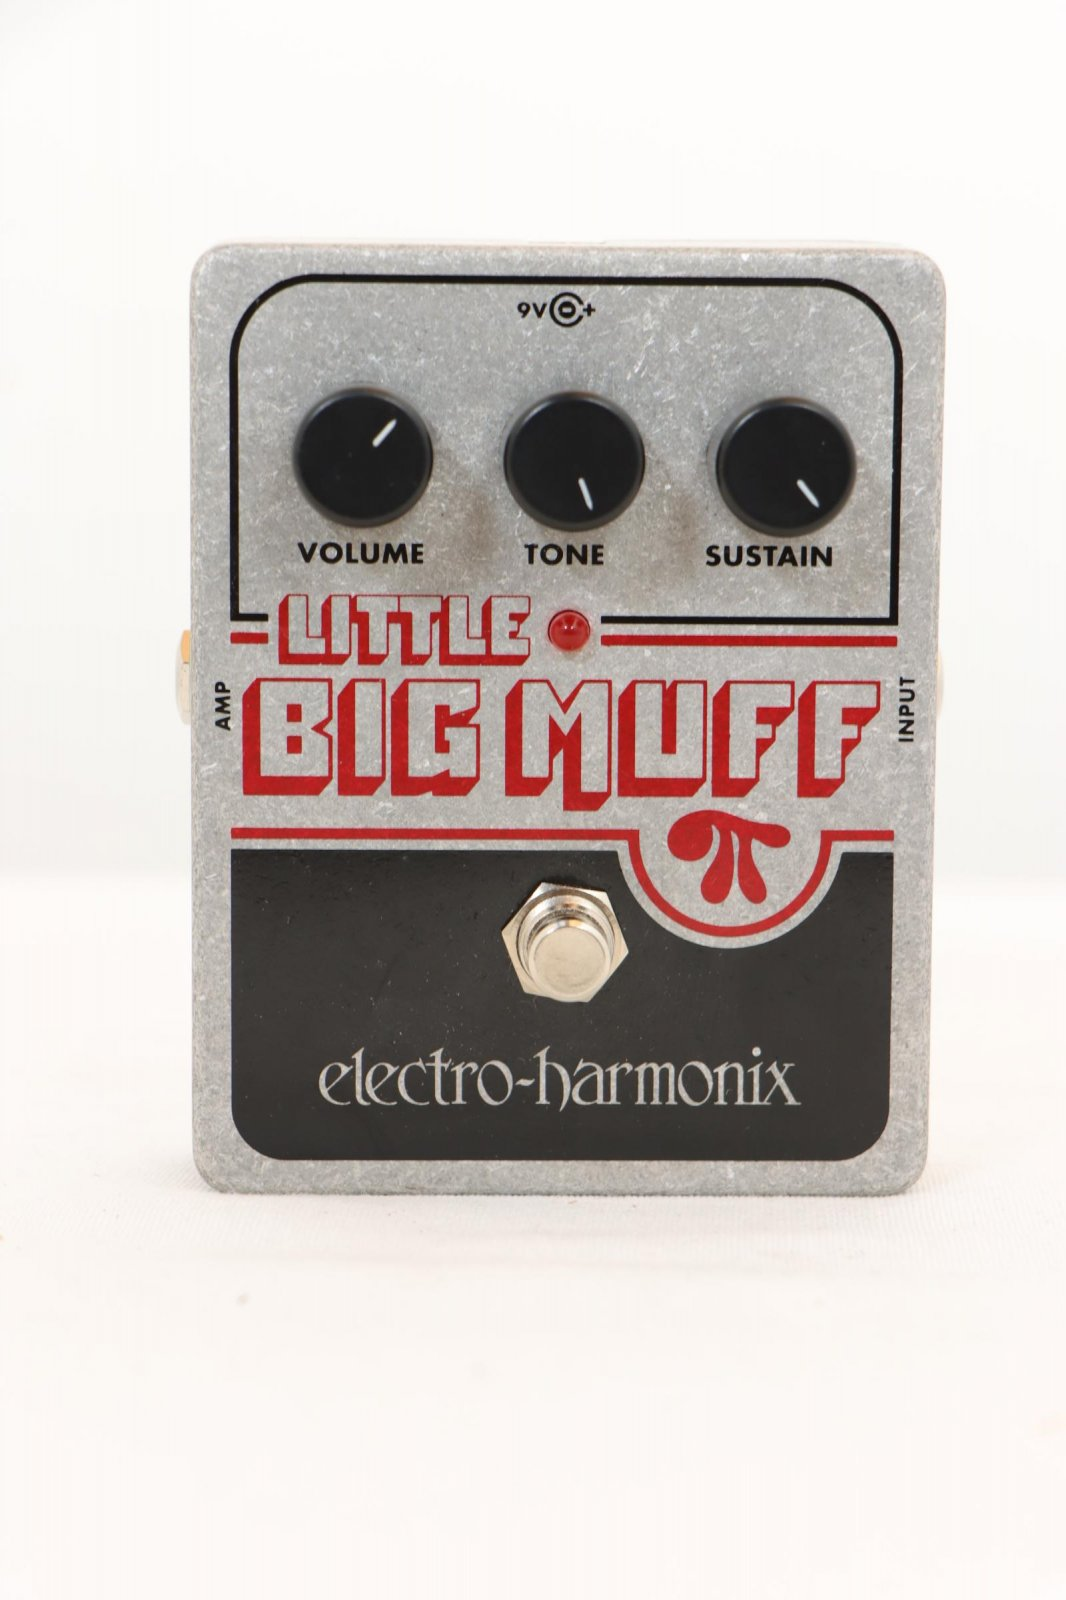 USED Electro-Harmonix Little Big Muff Guitar Effects Pedal